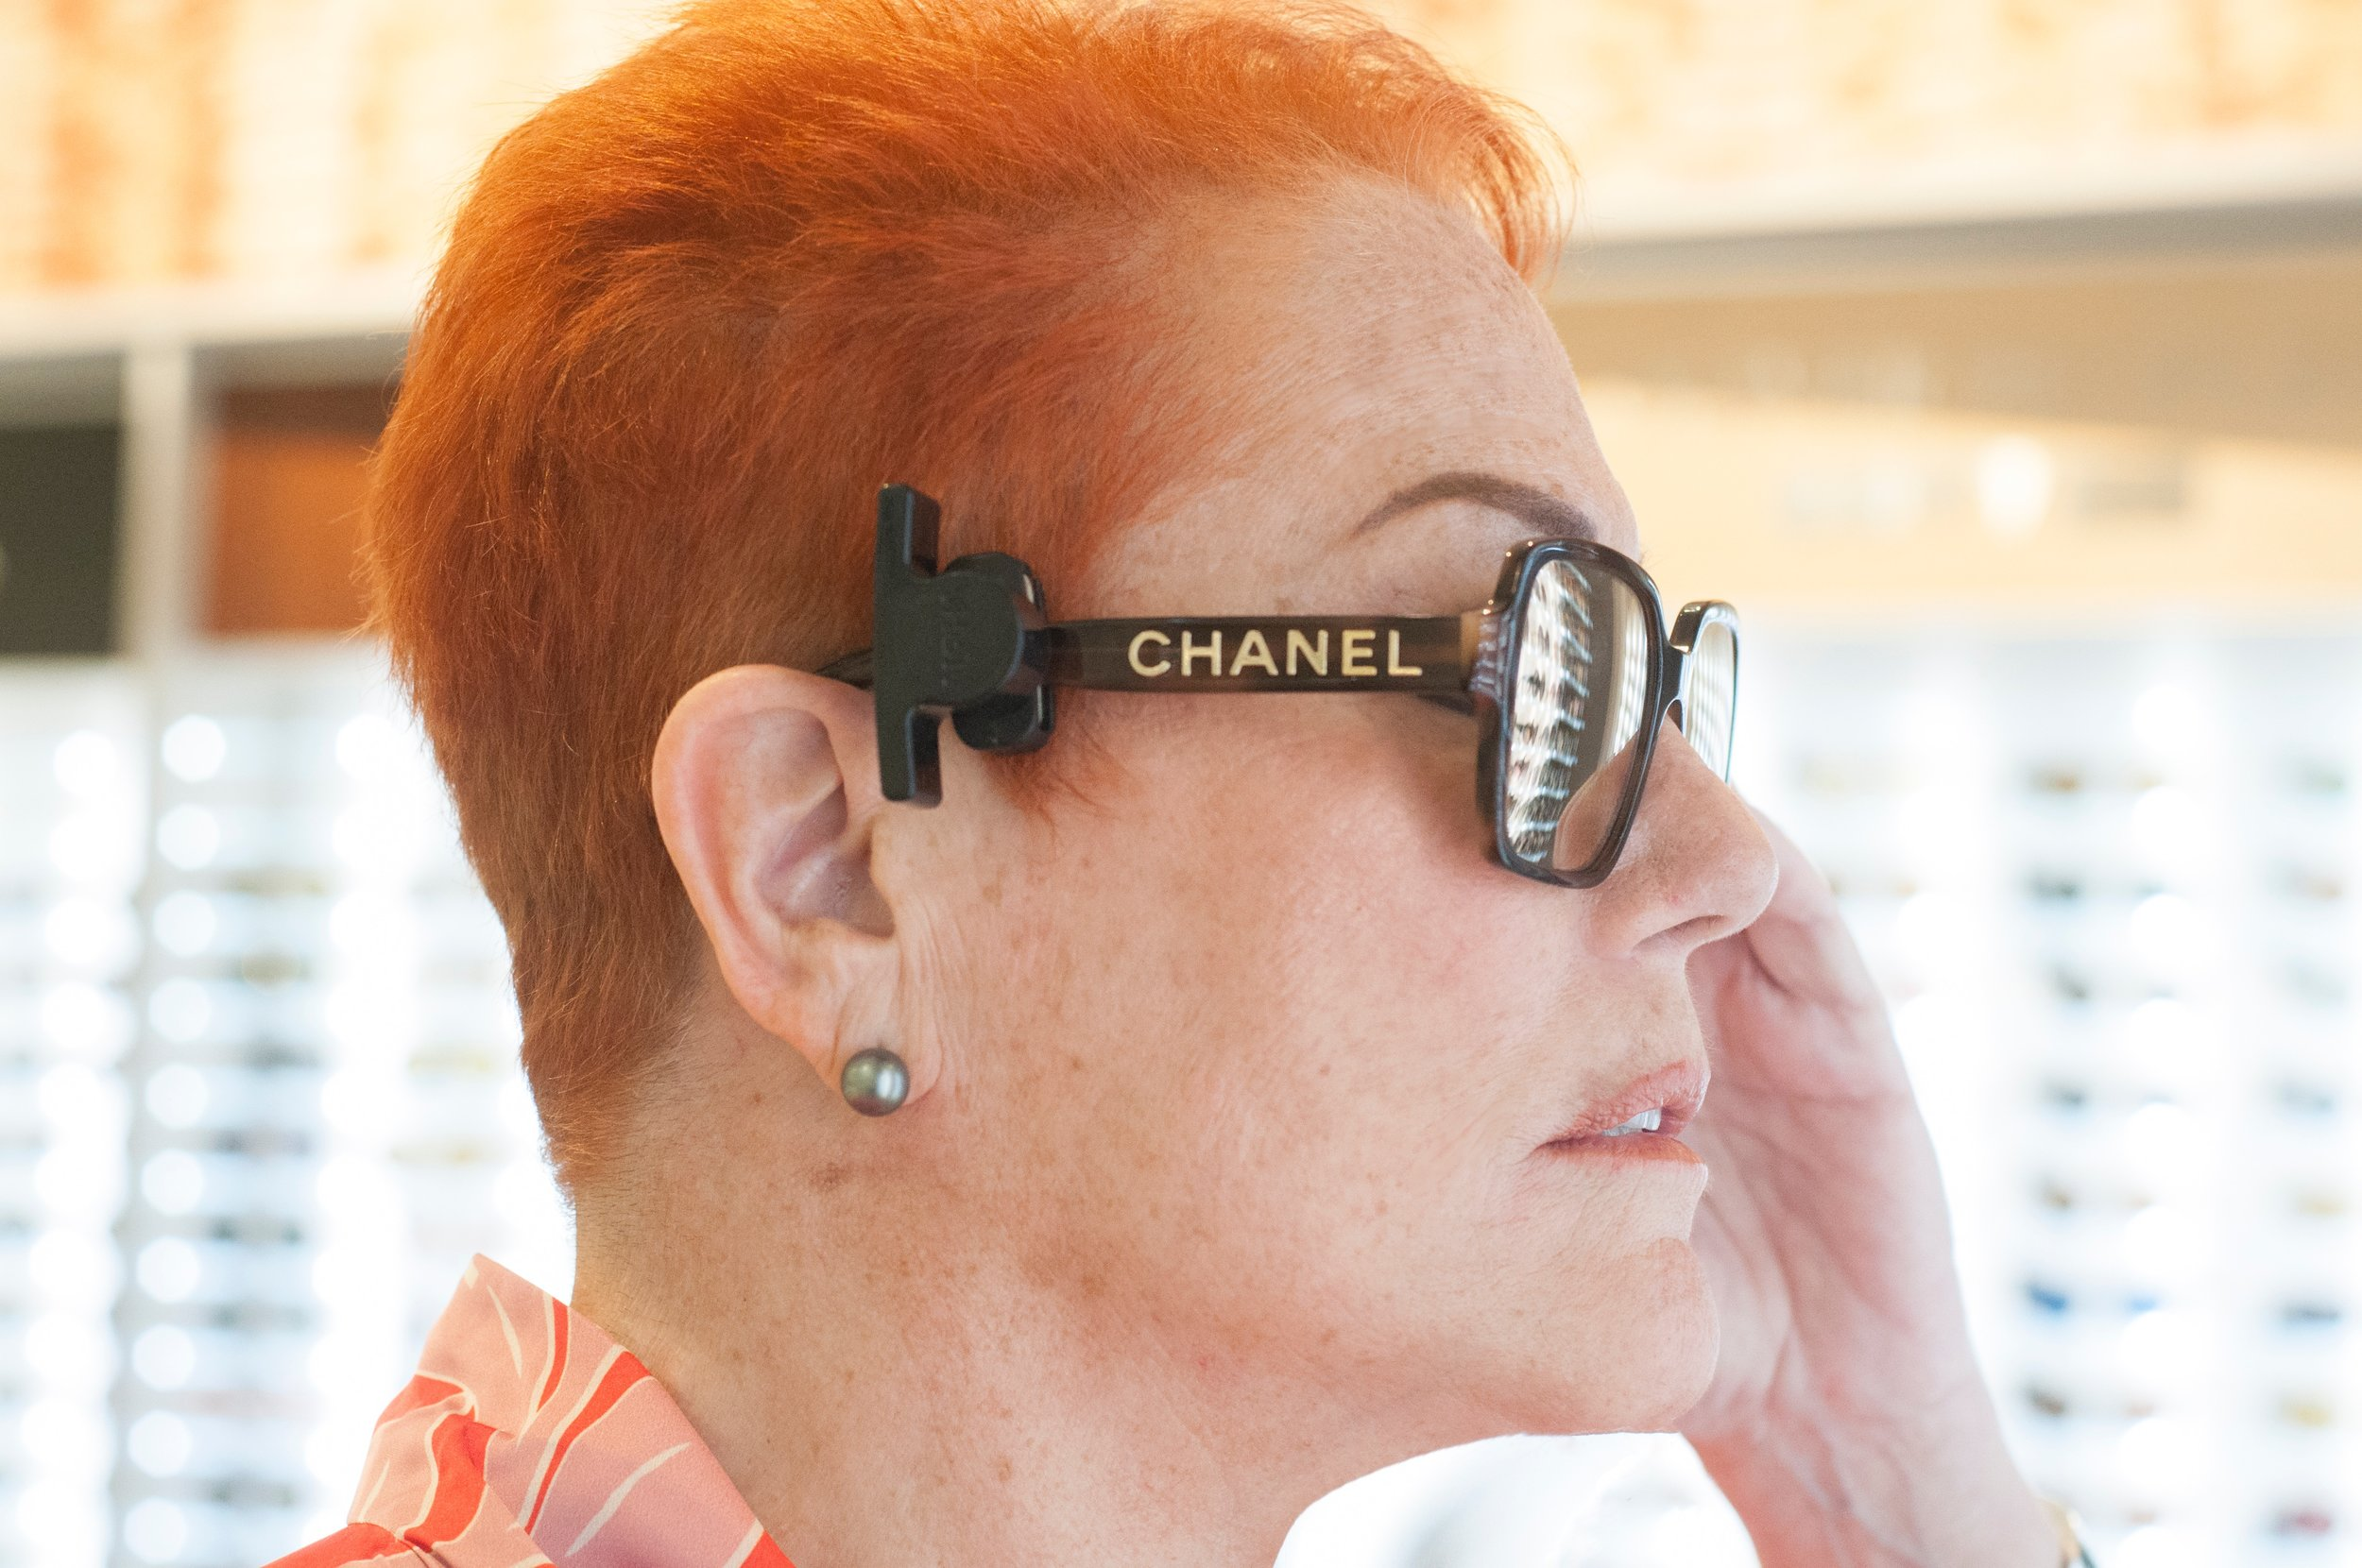 Chanel Sunglasses - Chanel is so innovative! The sunglasses are unusual and fun and always of the moment. For an easy jump from tired to trendy, Chanel has the right pair of sunglasses to perk up any outfit.